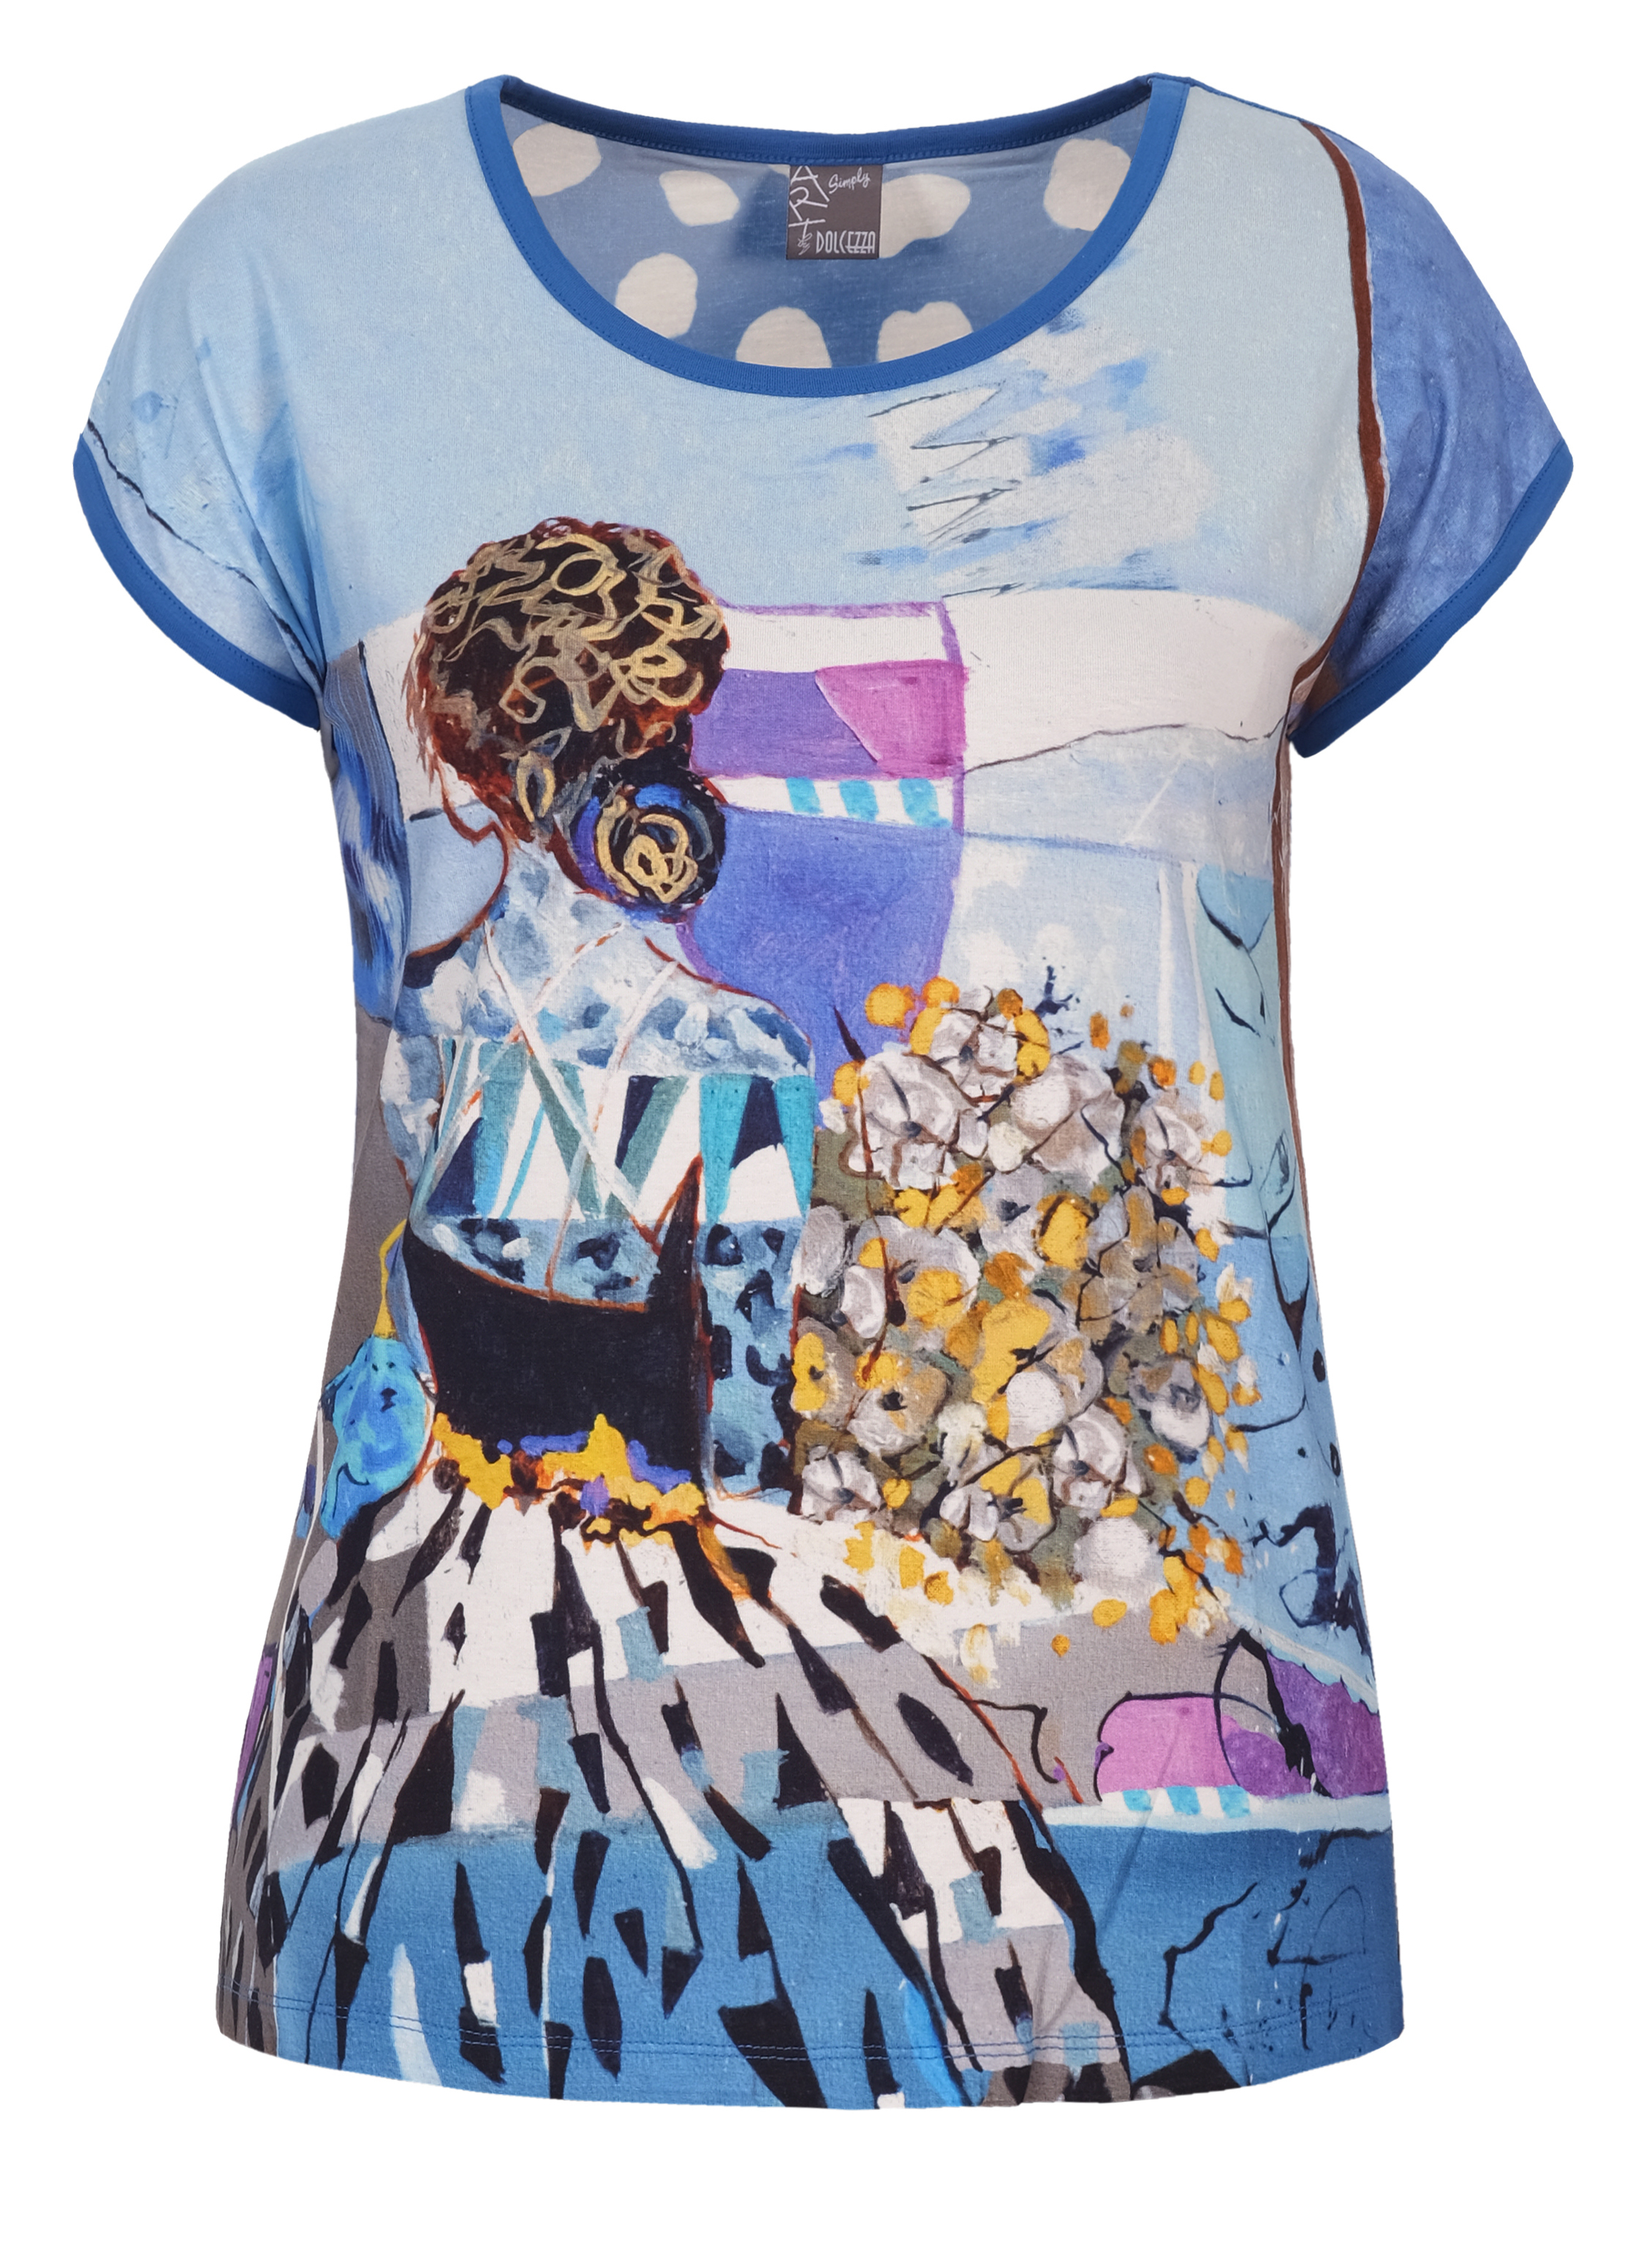 Simply Art Dolcezza: Princess Danae Capped Sleeve Abstract Art T-Shirt (1 Left!) Dolcezza_SimplyArt_21741